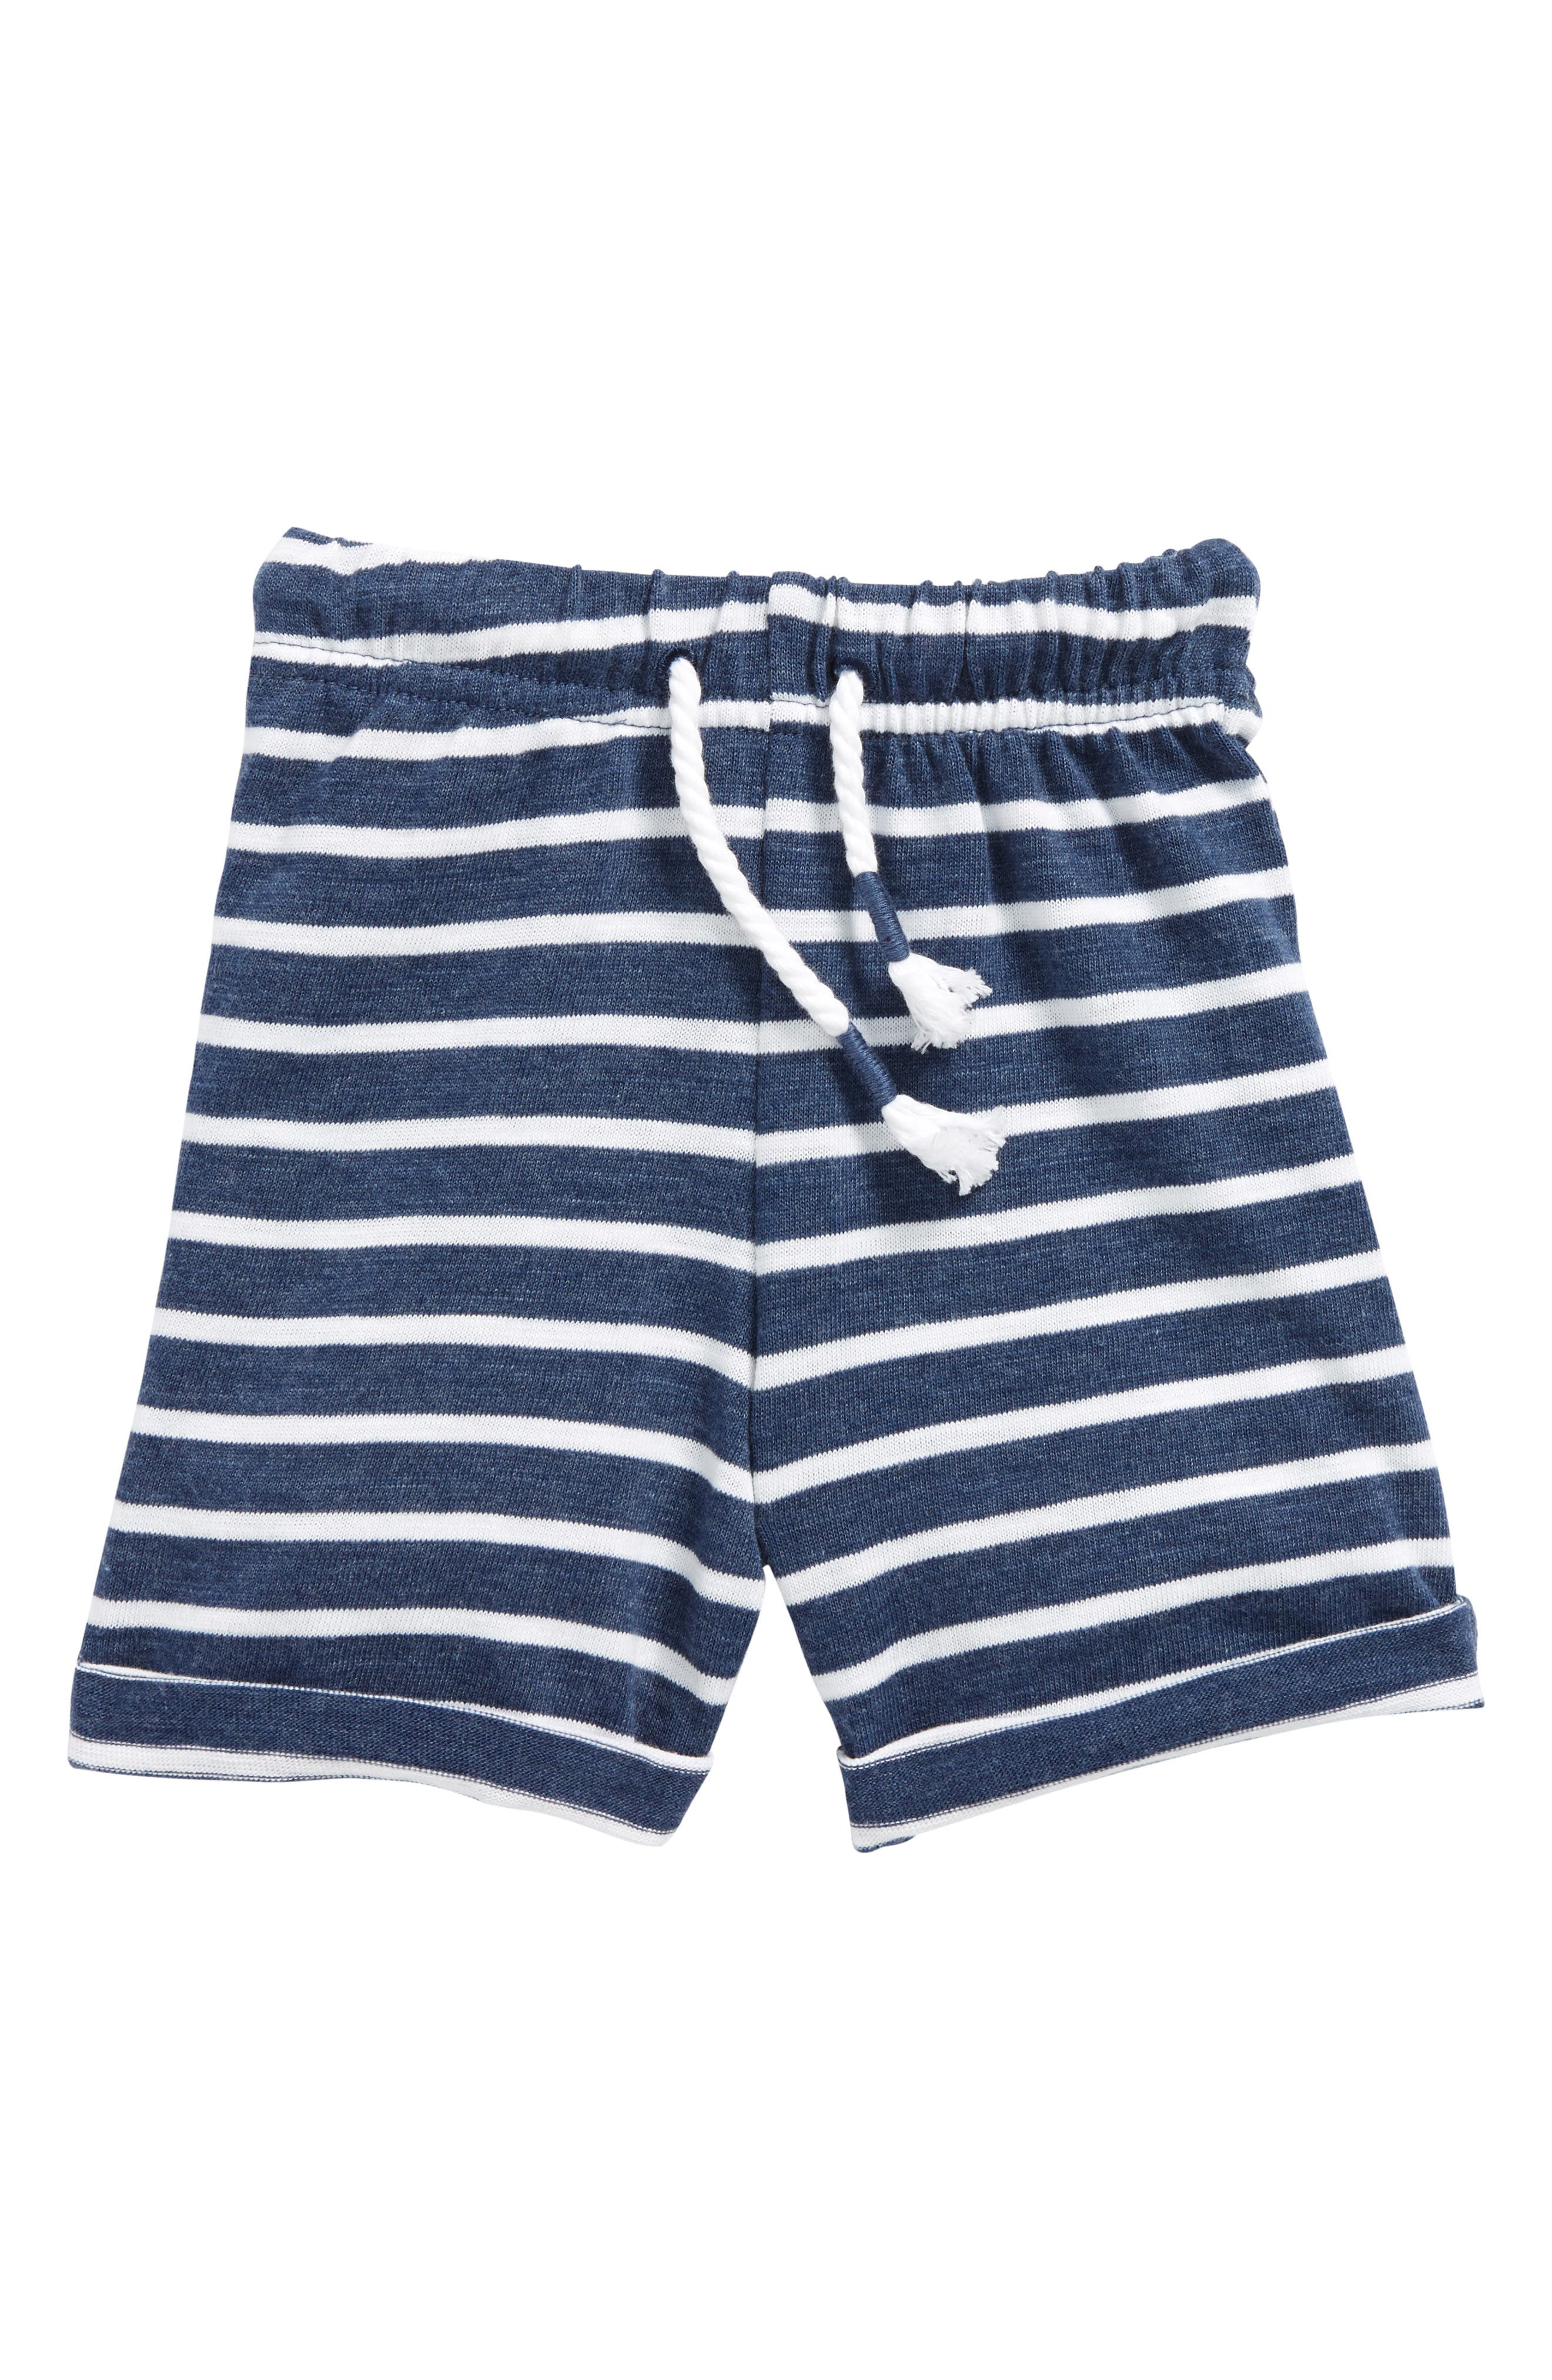 Stripe Shorts,                         Main,                         color, Navy Striped